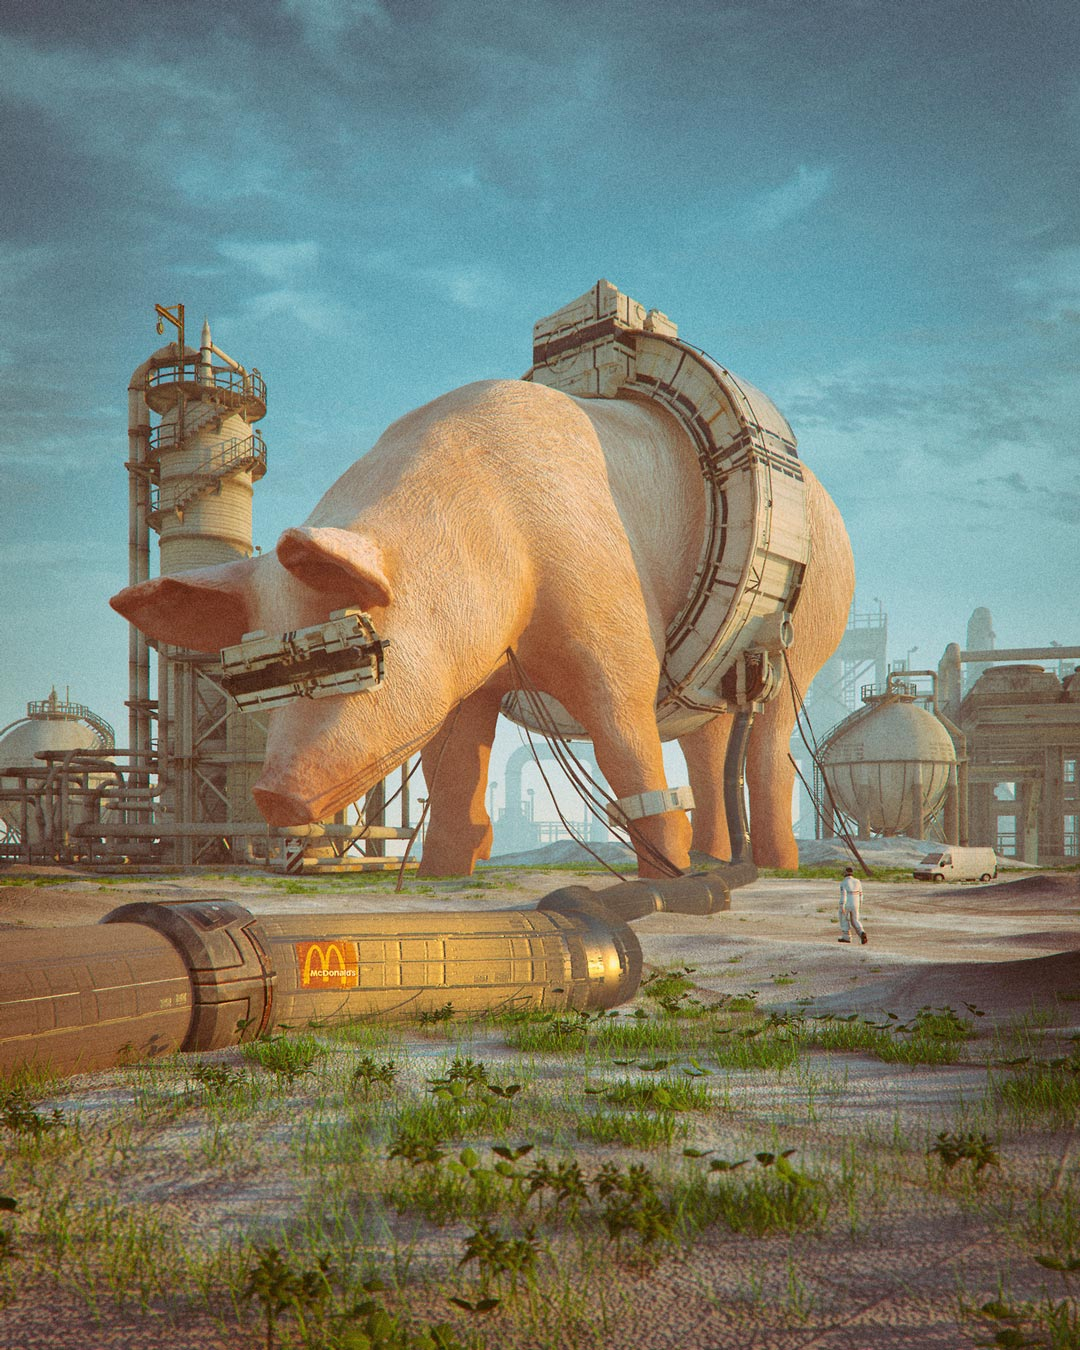 Beeple, McDonalds 2185